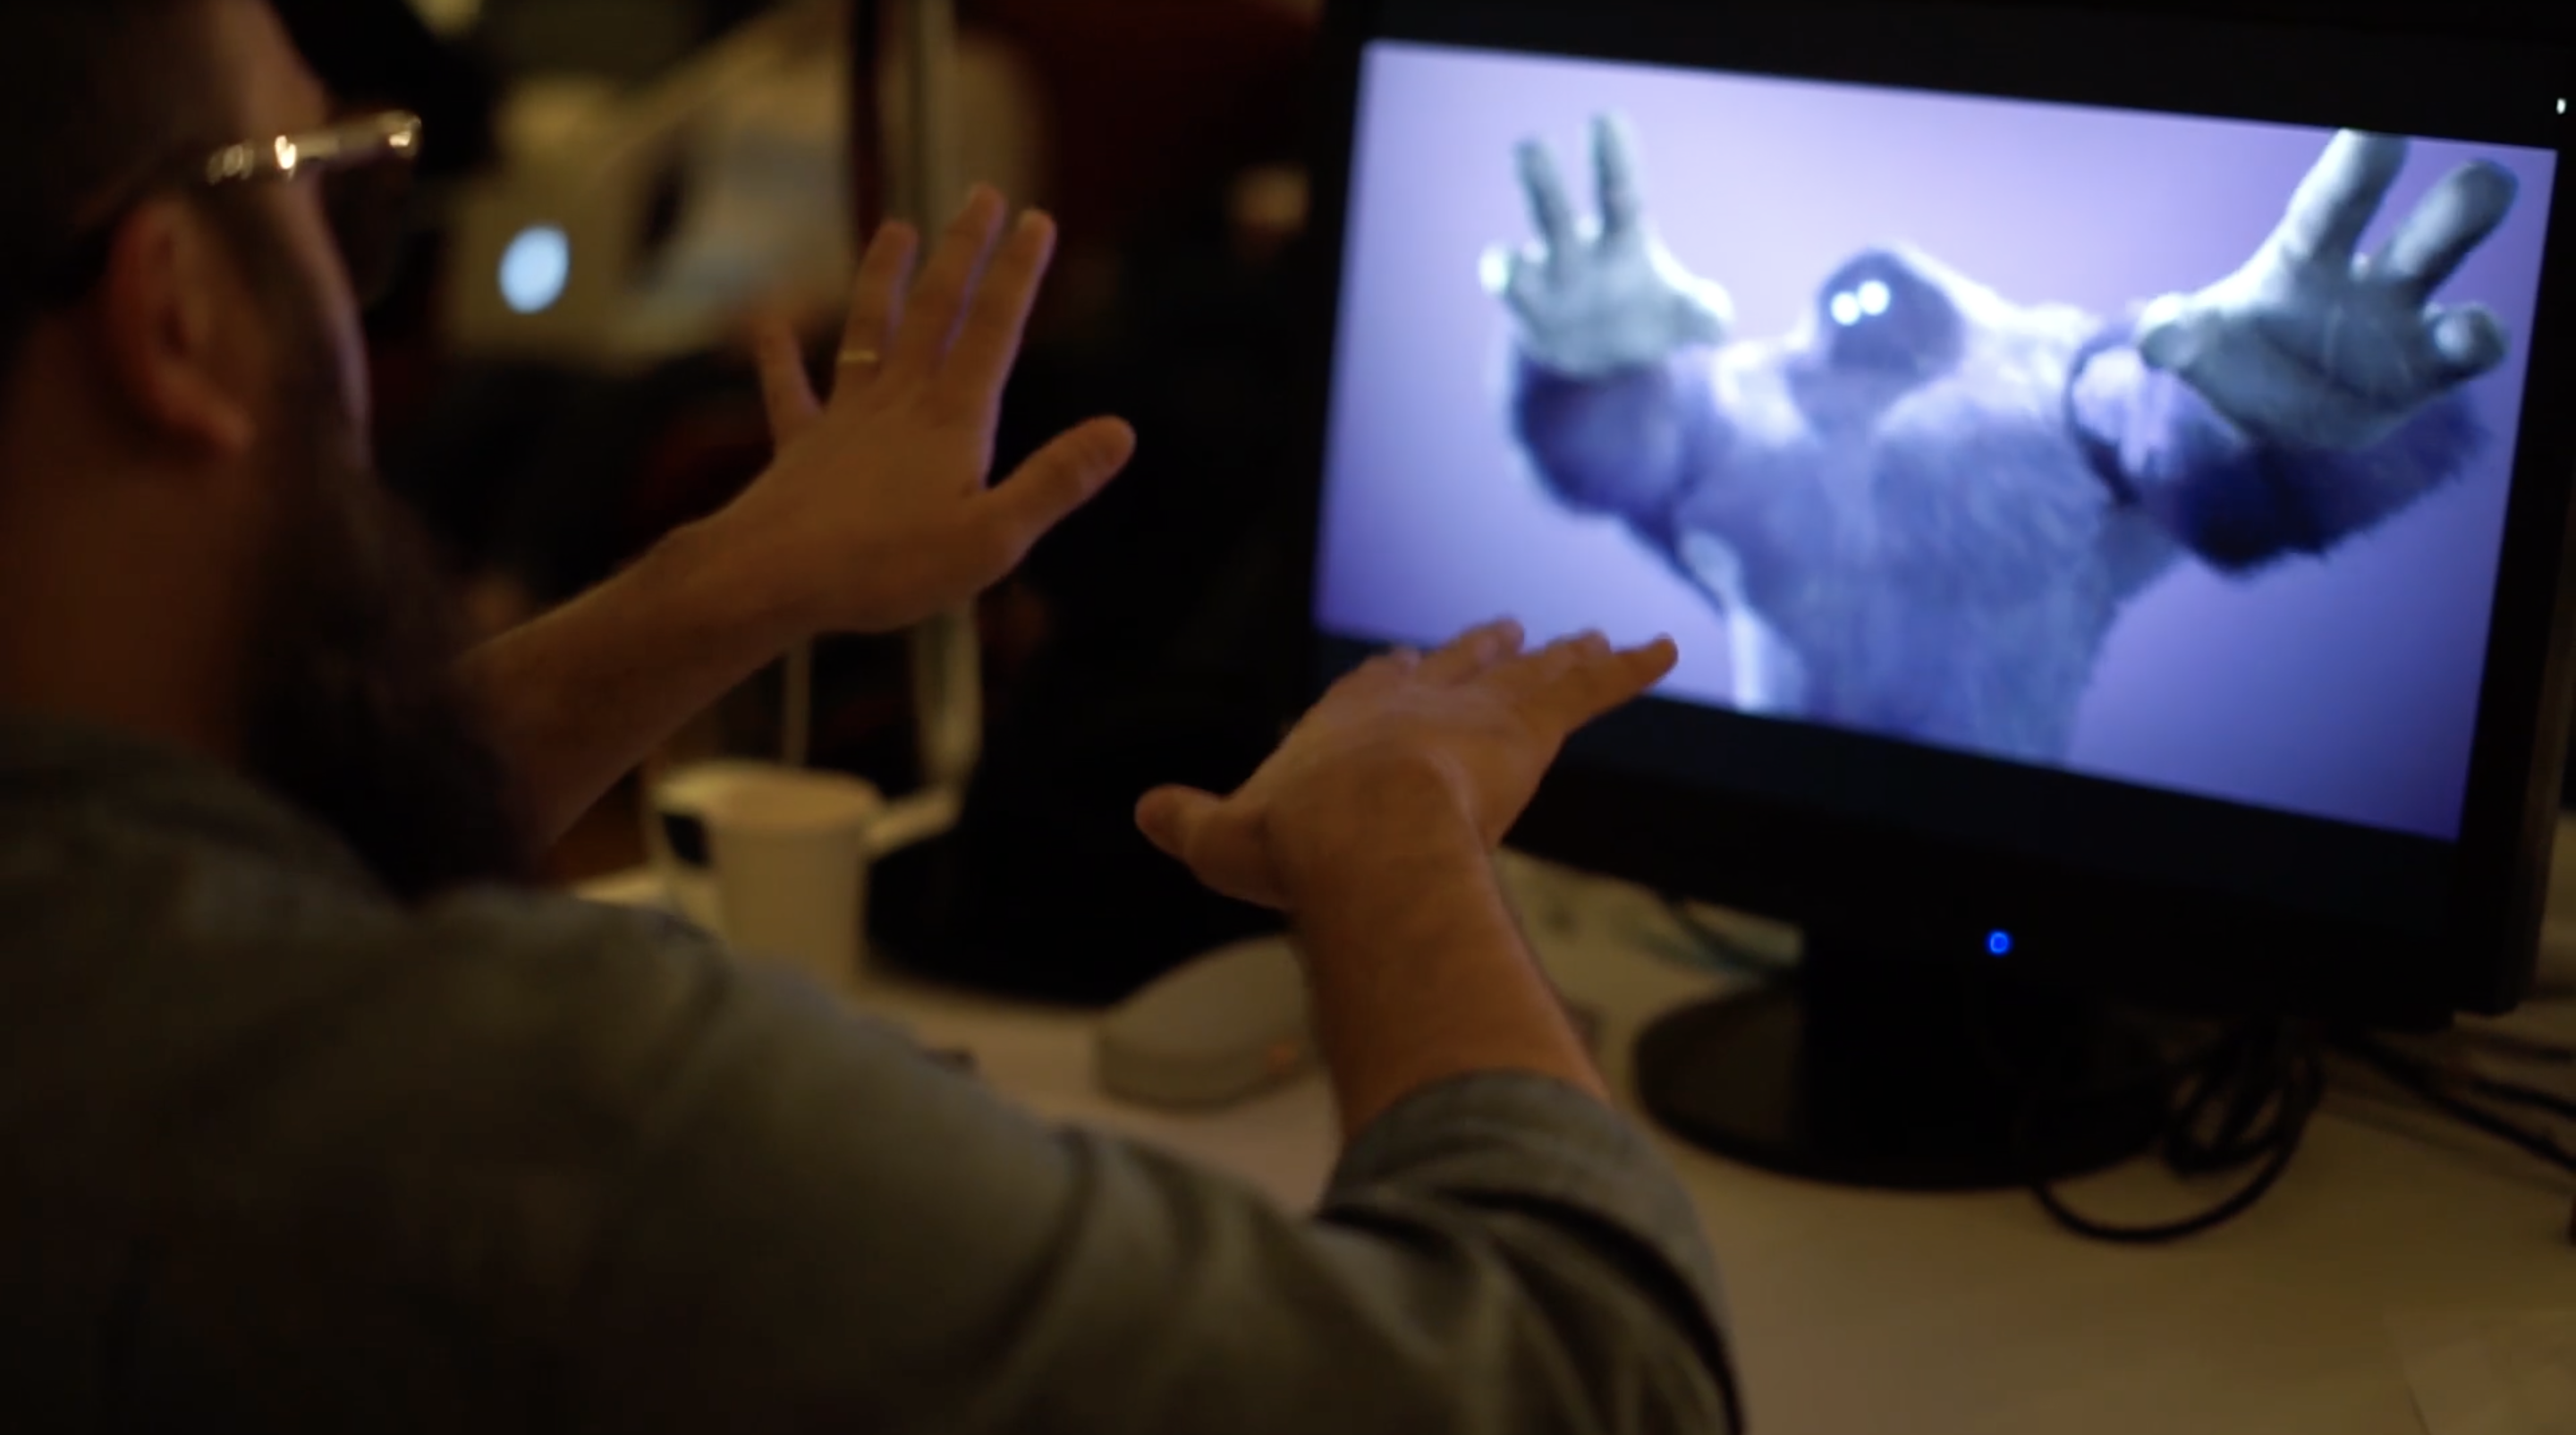 Using hand gestures in virtual production